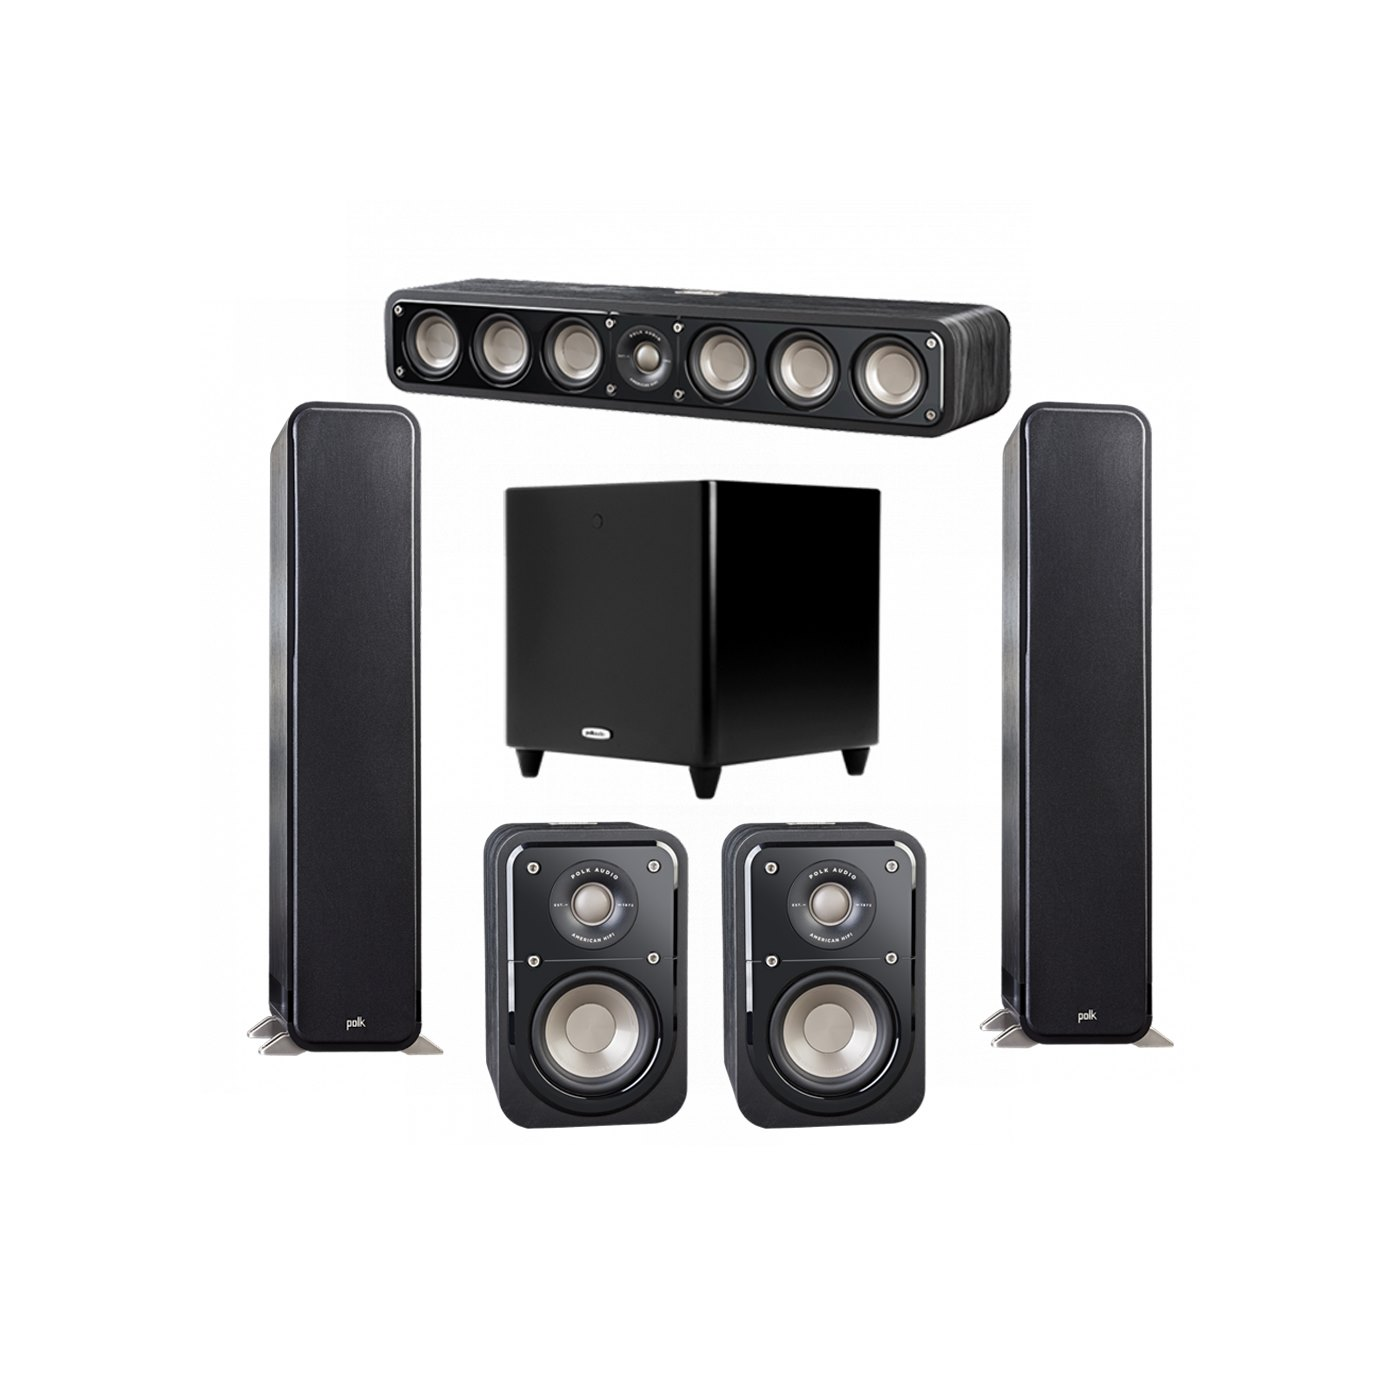 Polk Audio Signature 5.1 System with 2 S55 Tower Speaker, 1 Polk S35 Center Speaker, 2 Polk S10 Surround Speaker, 1 Polk DSW PRO 550 wi Subwoofer